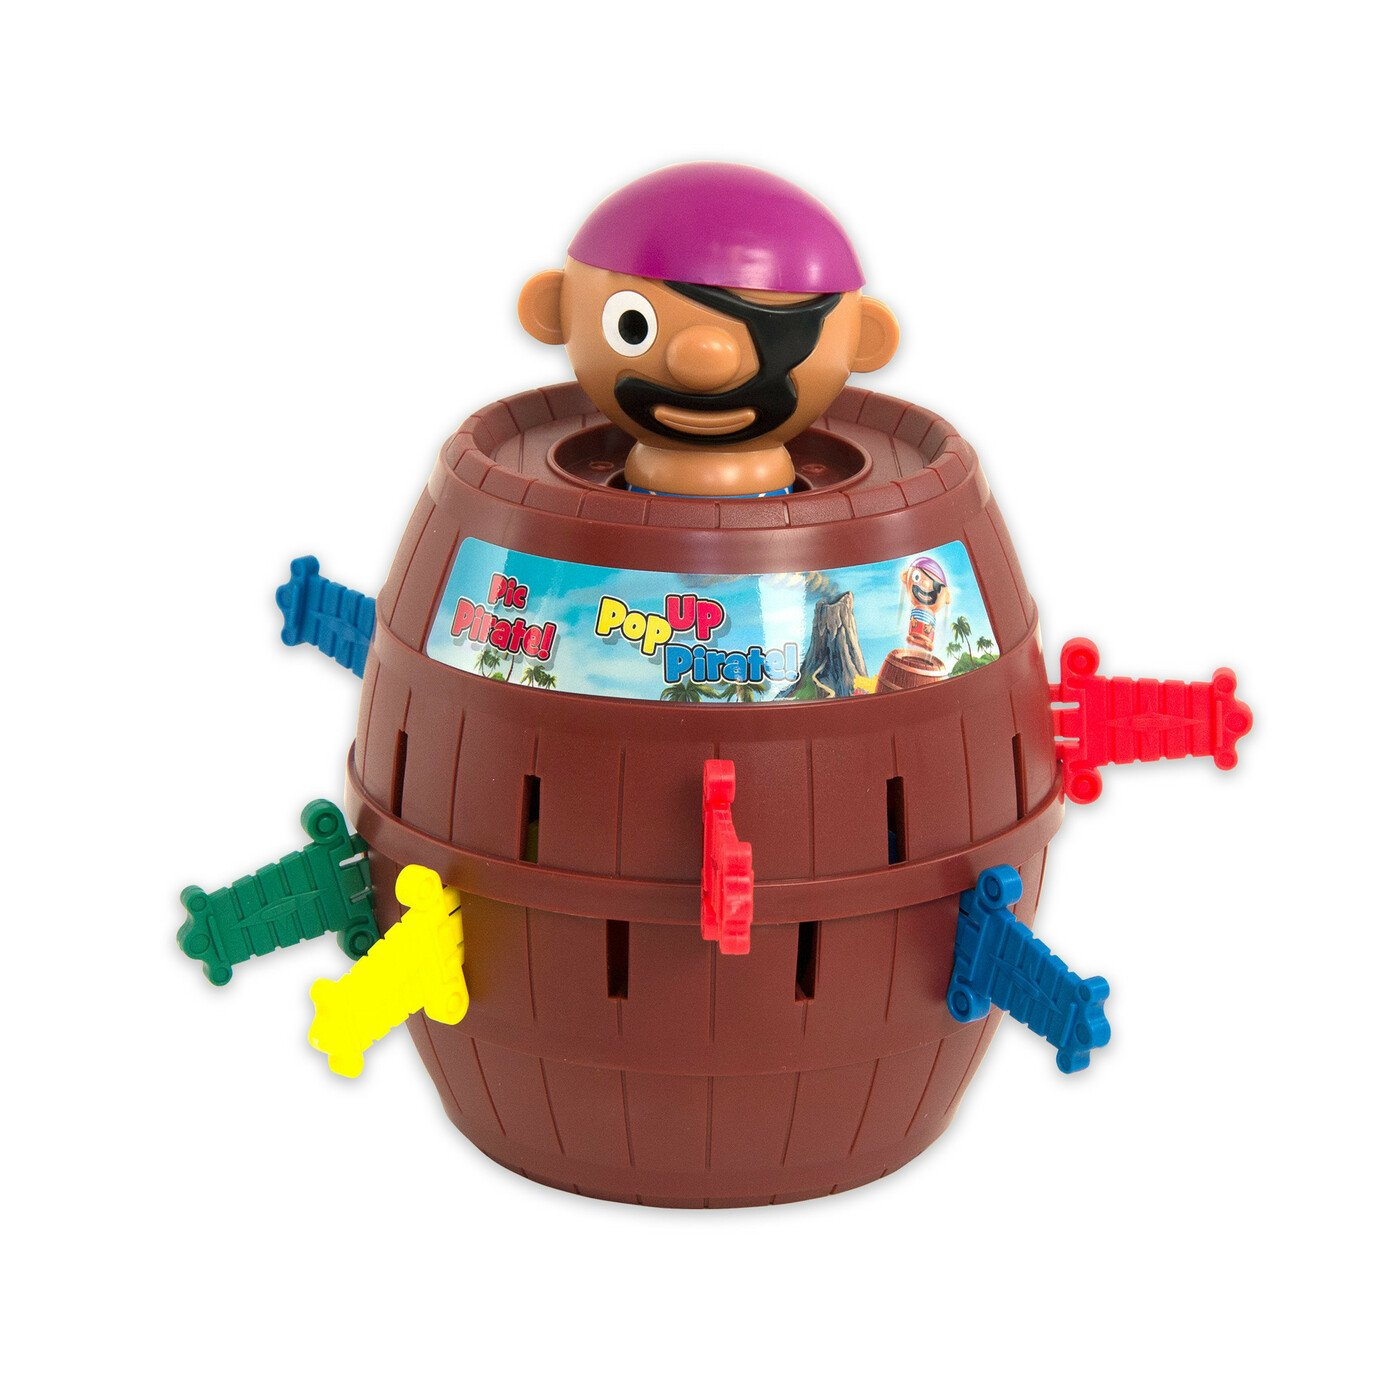 Pop Up Pirate Game from Tomy